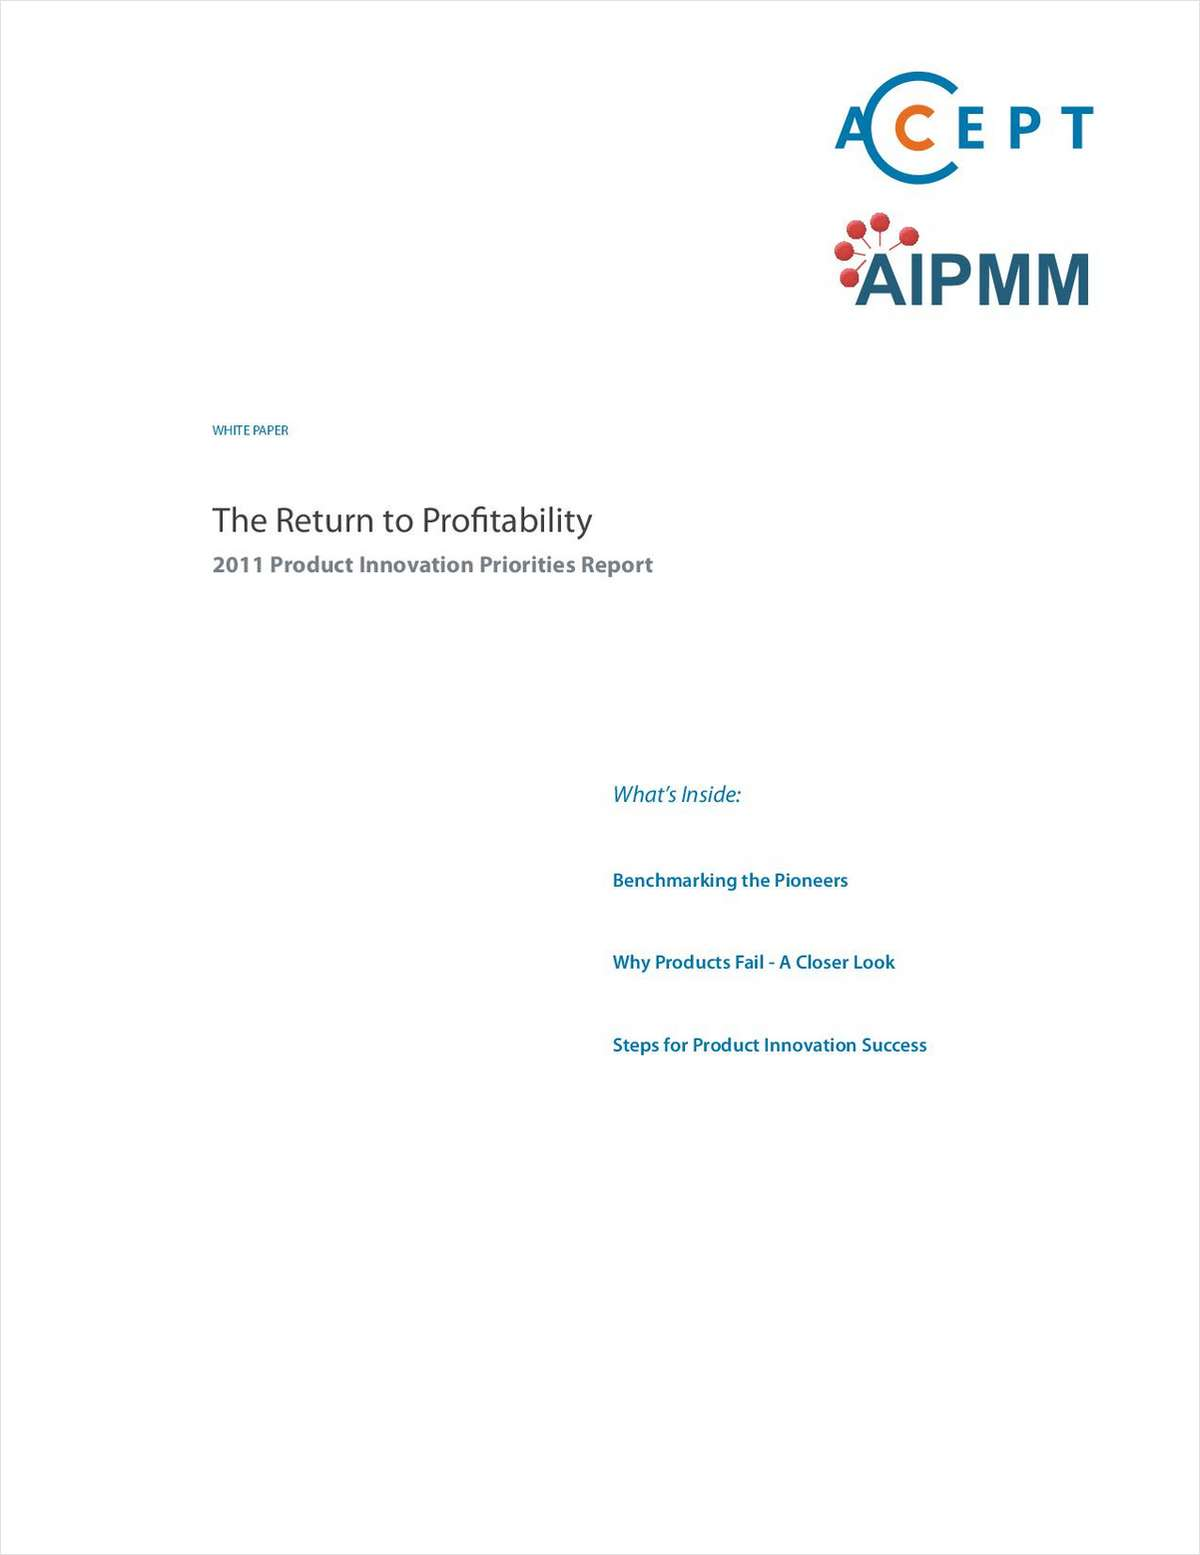 The Return to Profitability: 2011 Product Innovation Priorities Report